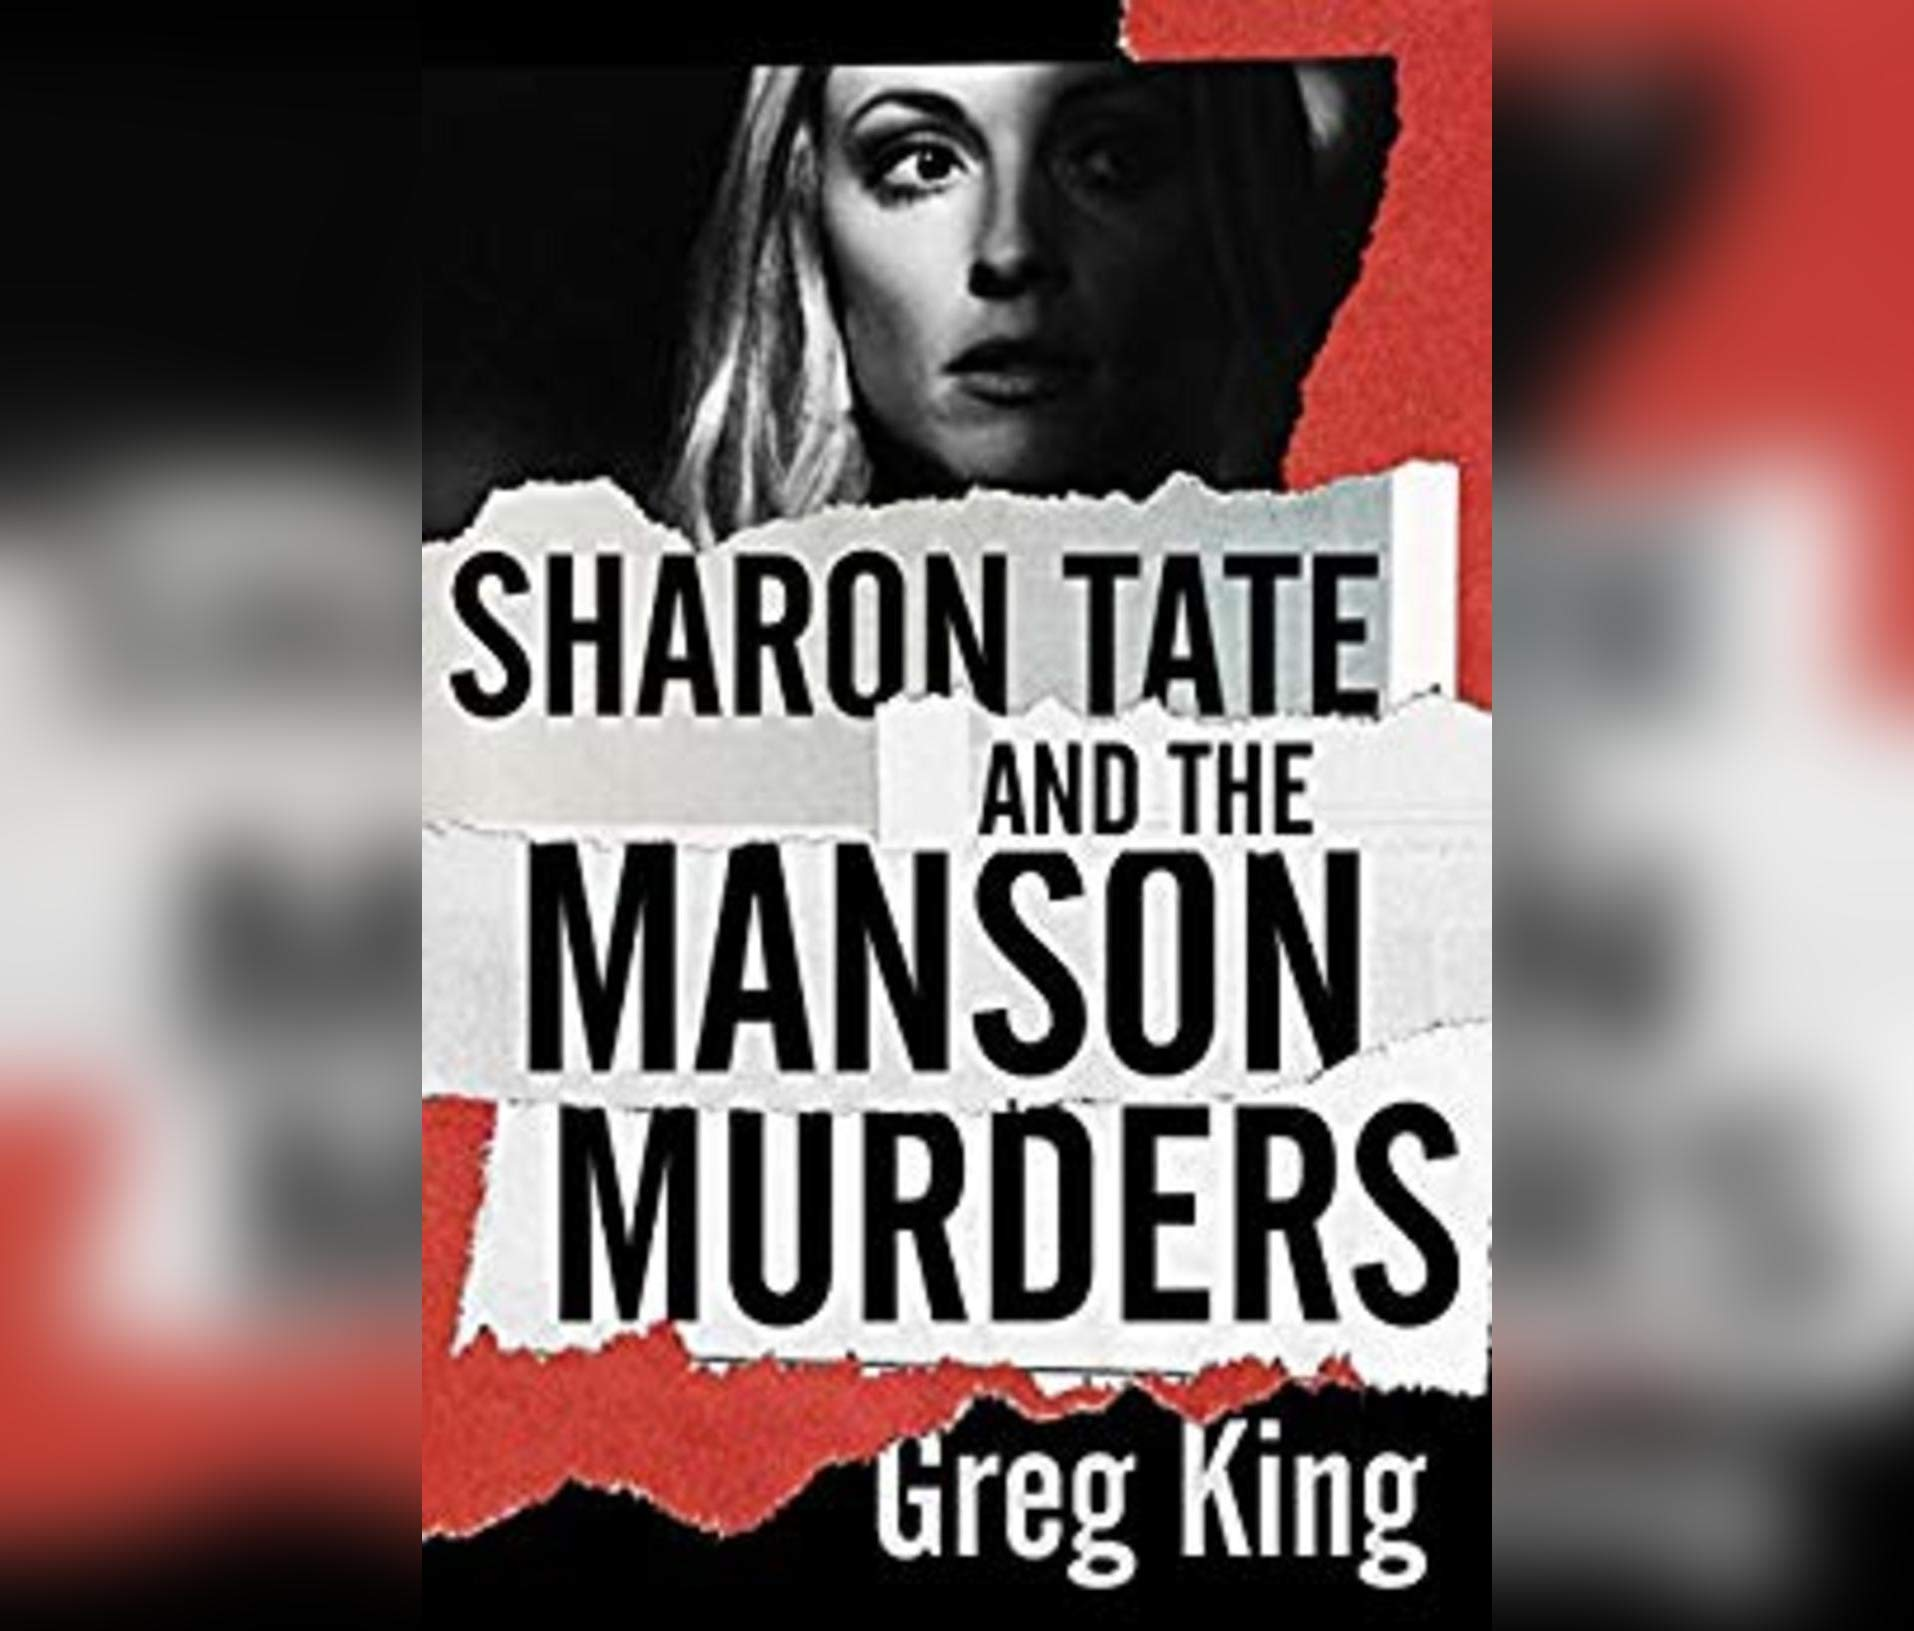 Sharon Tate and the Manson Murders: Greg King, Lewis Arlt